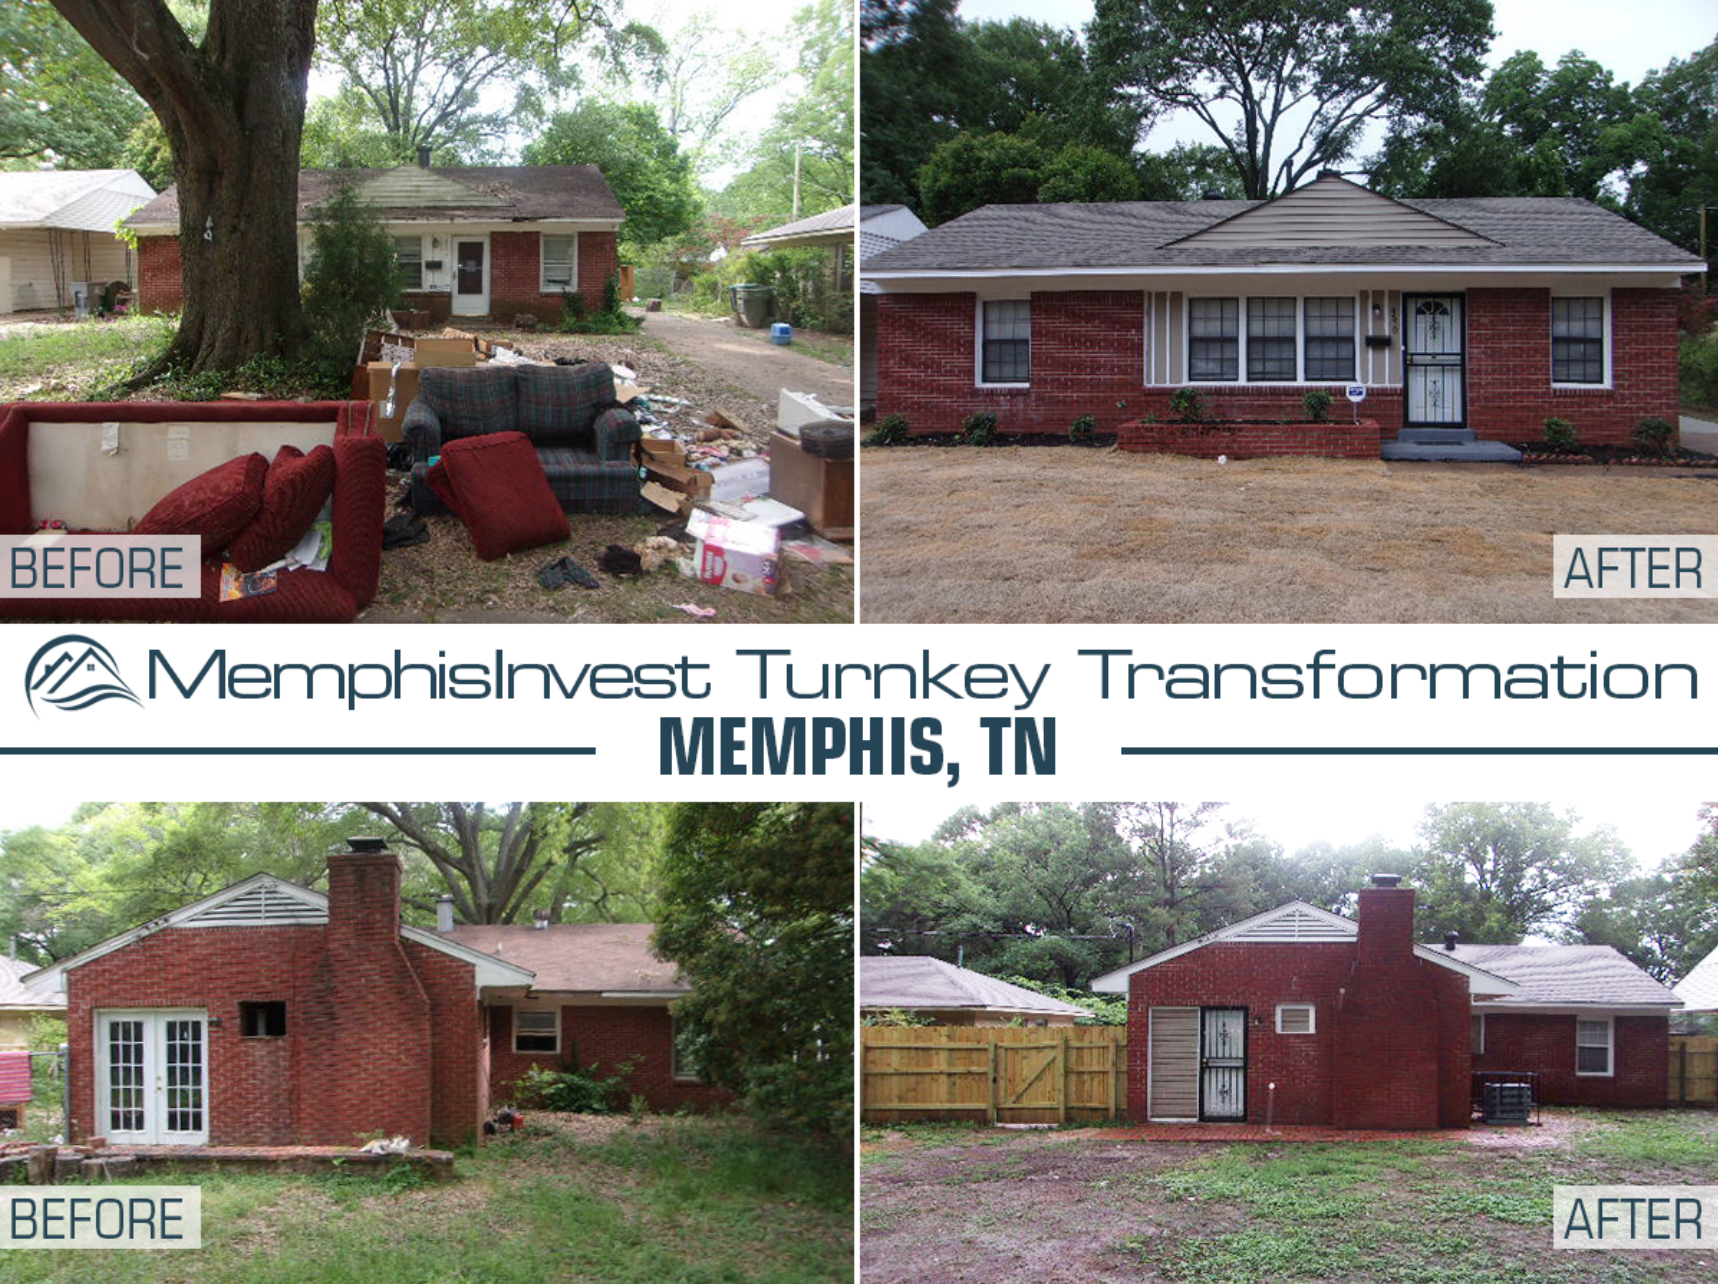 Memphis_Transformation_Tuesday